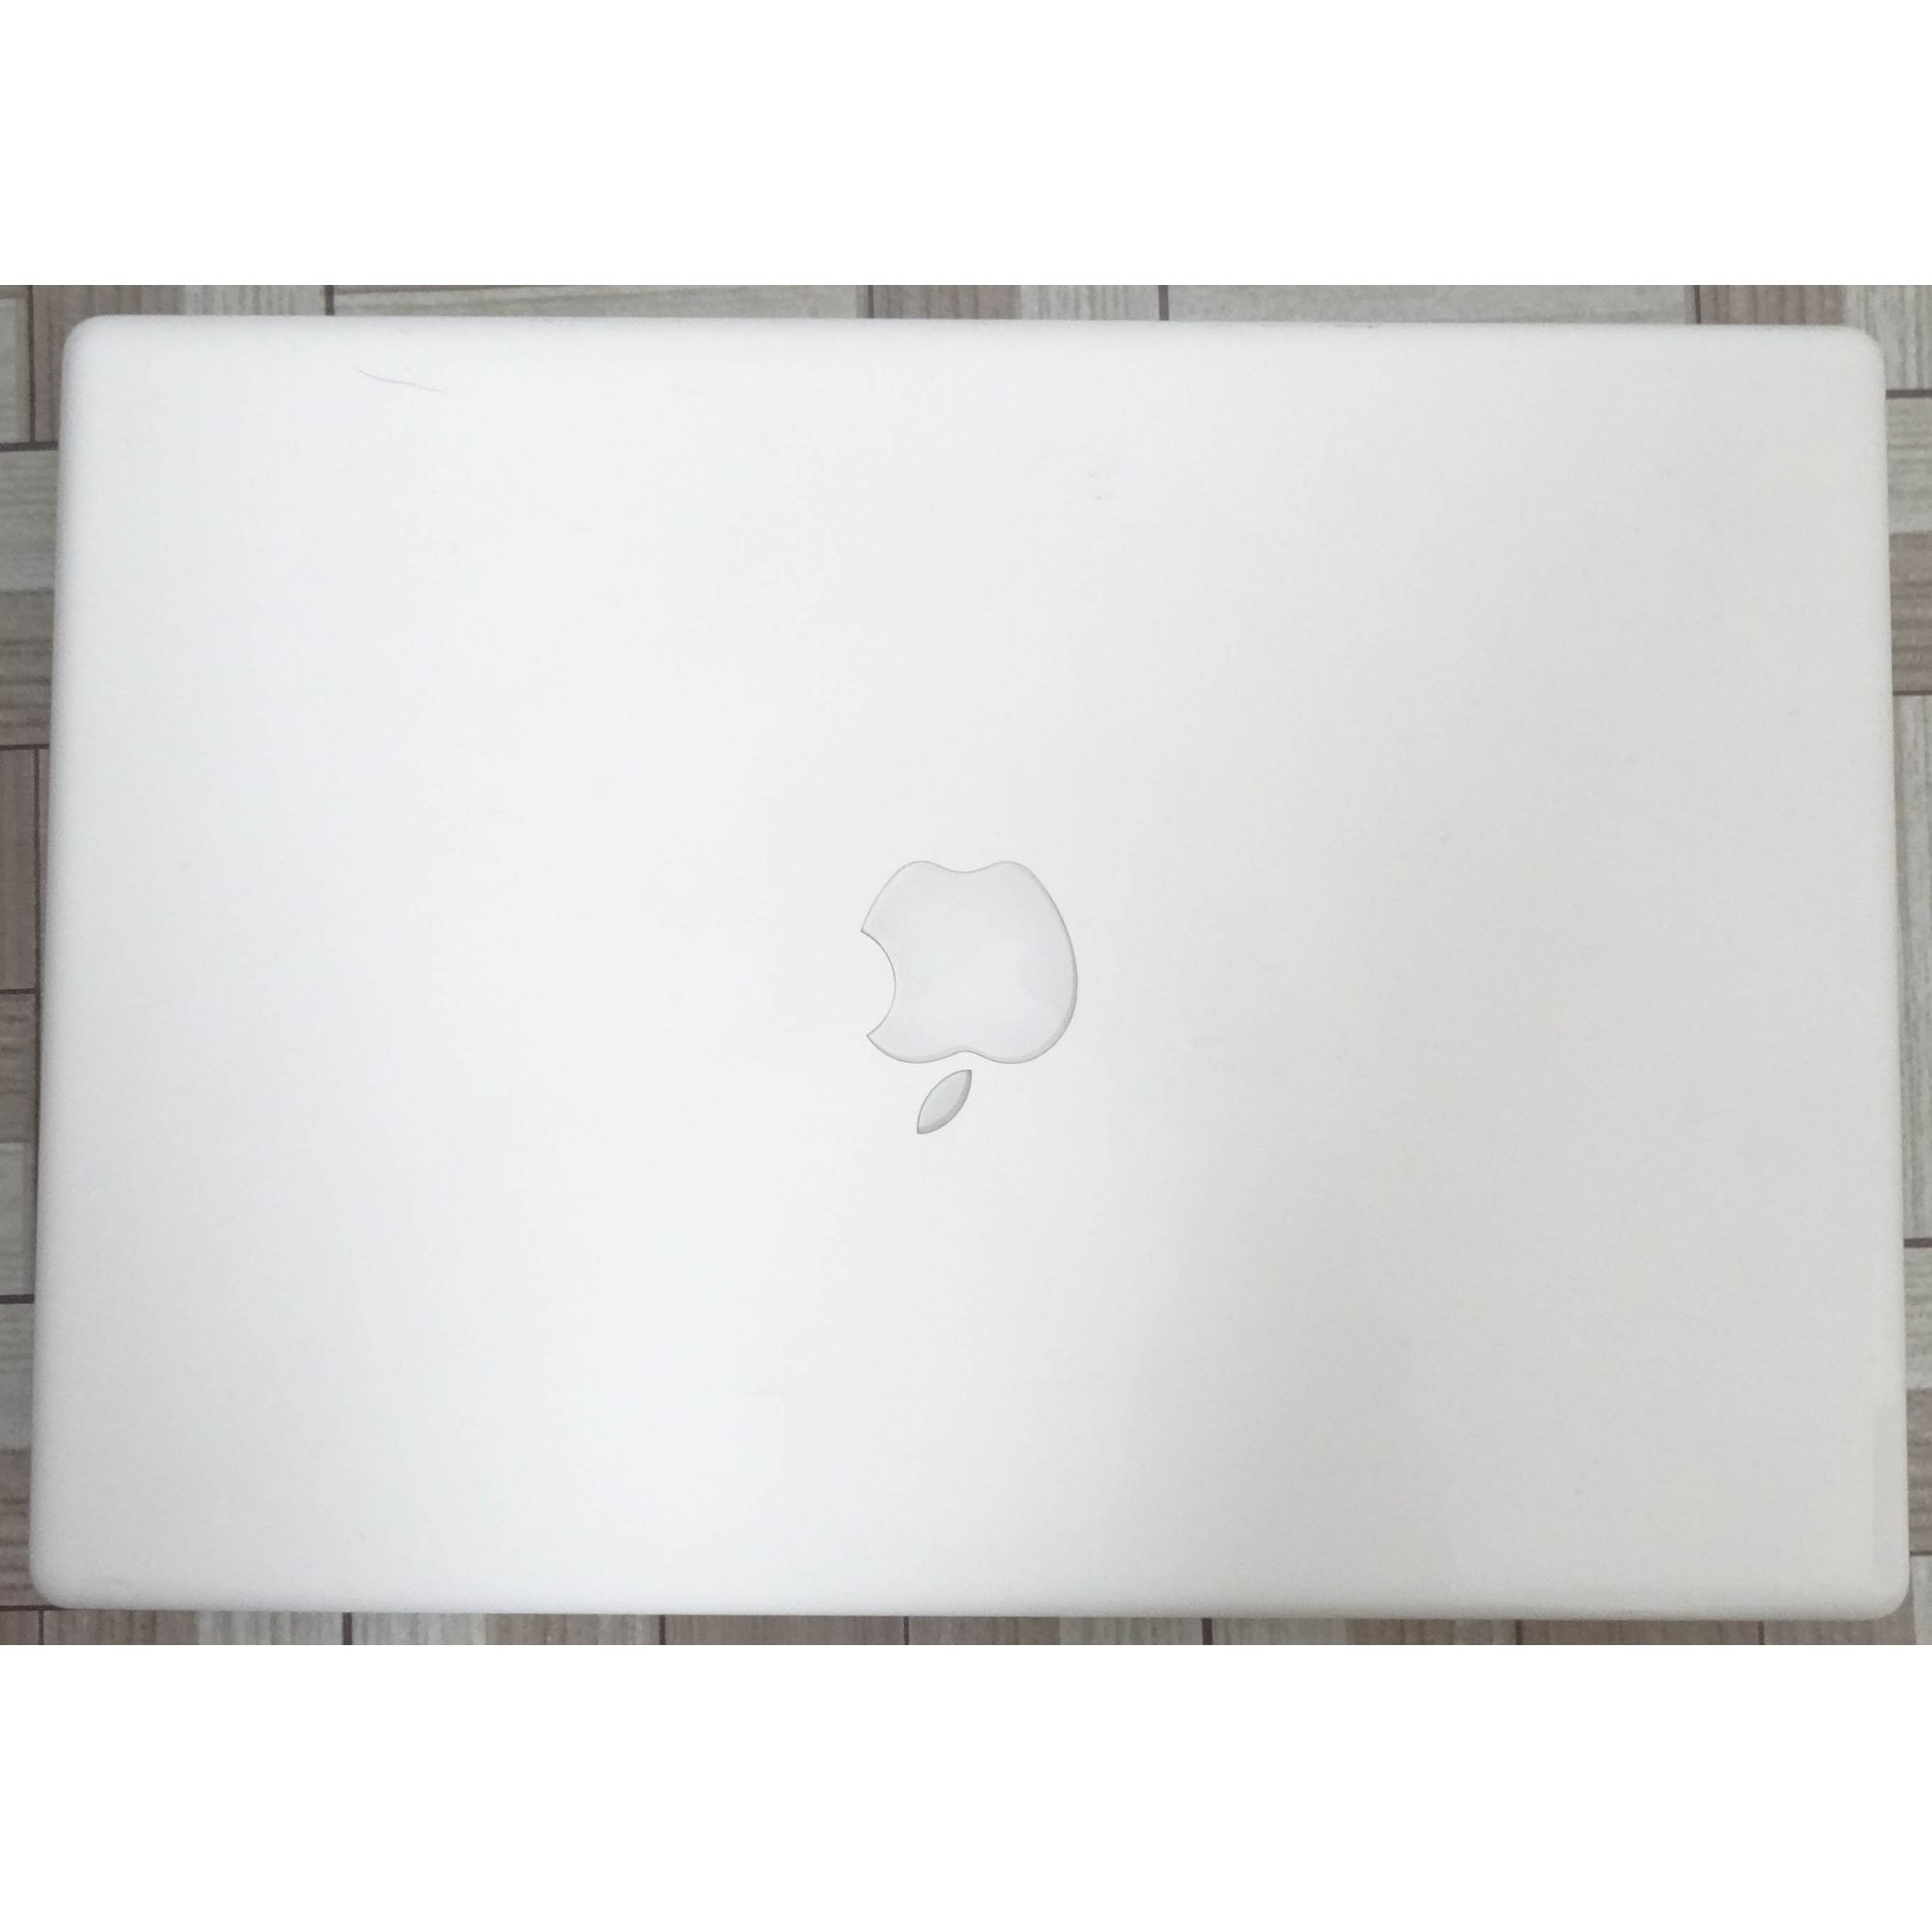 Macbook White MB403LL/A 13.3'' Core 2 Duo 2.4GHz 3GB HD-160GB